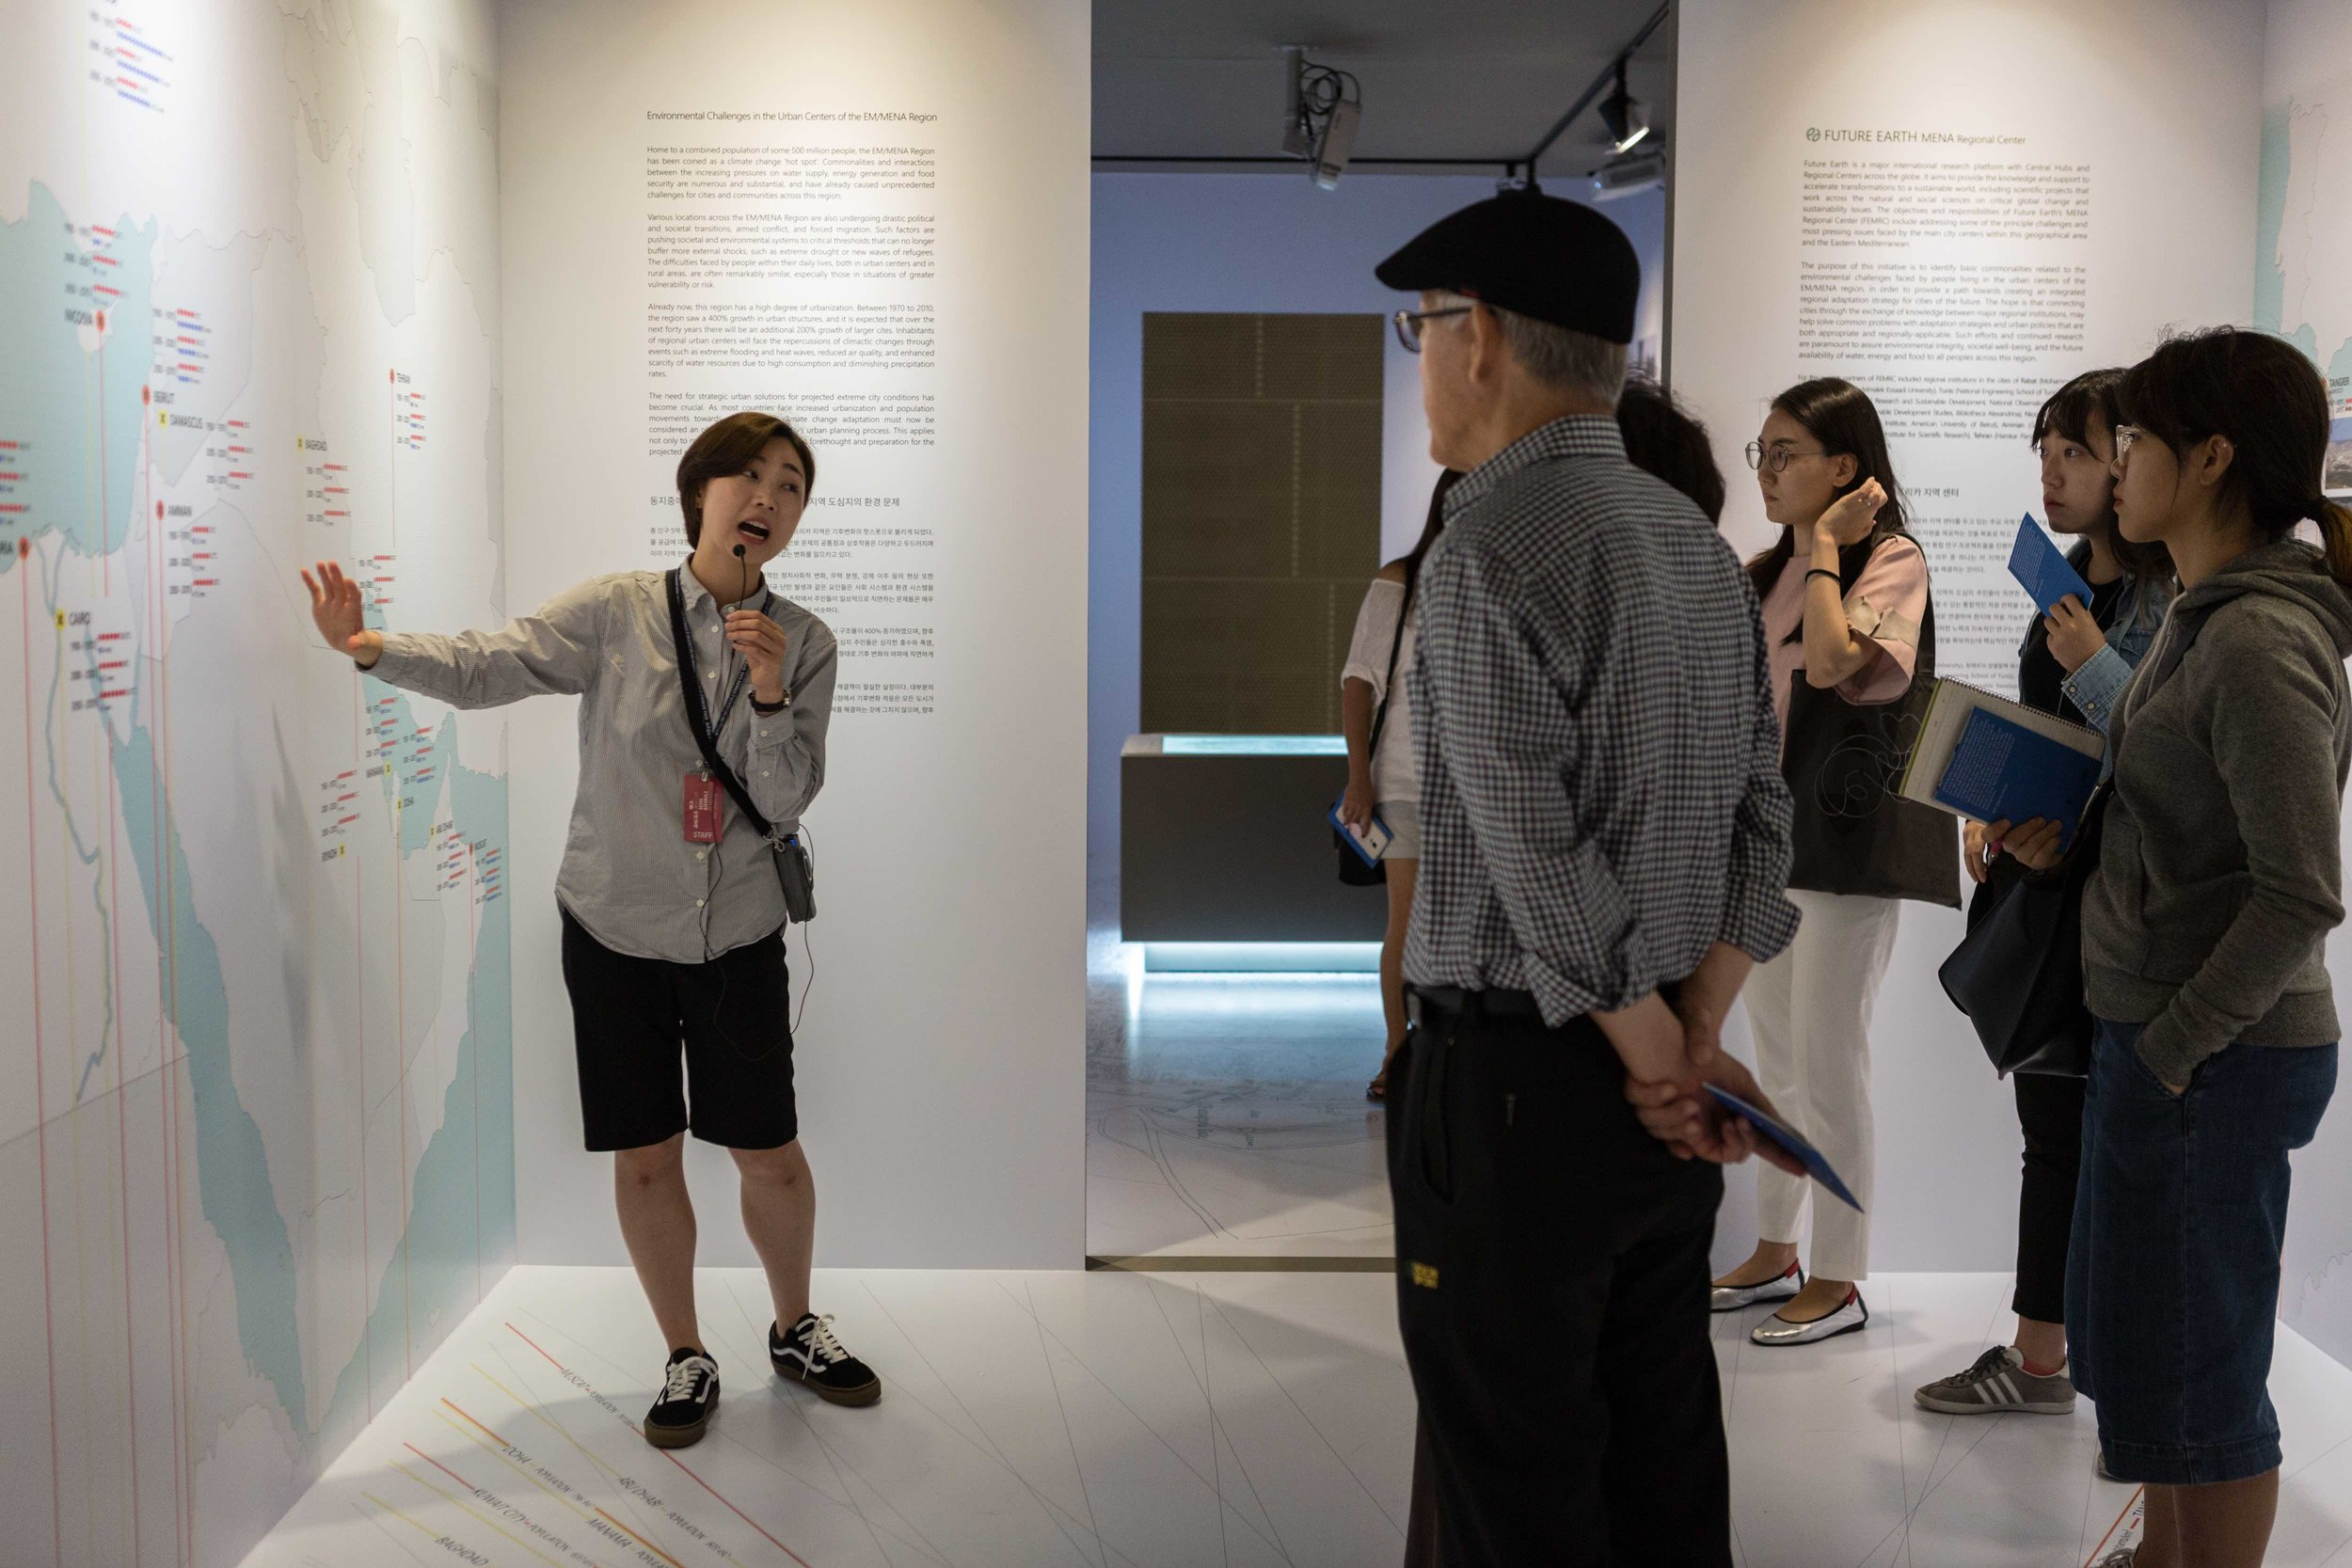 Guided tours for the public